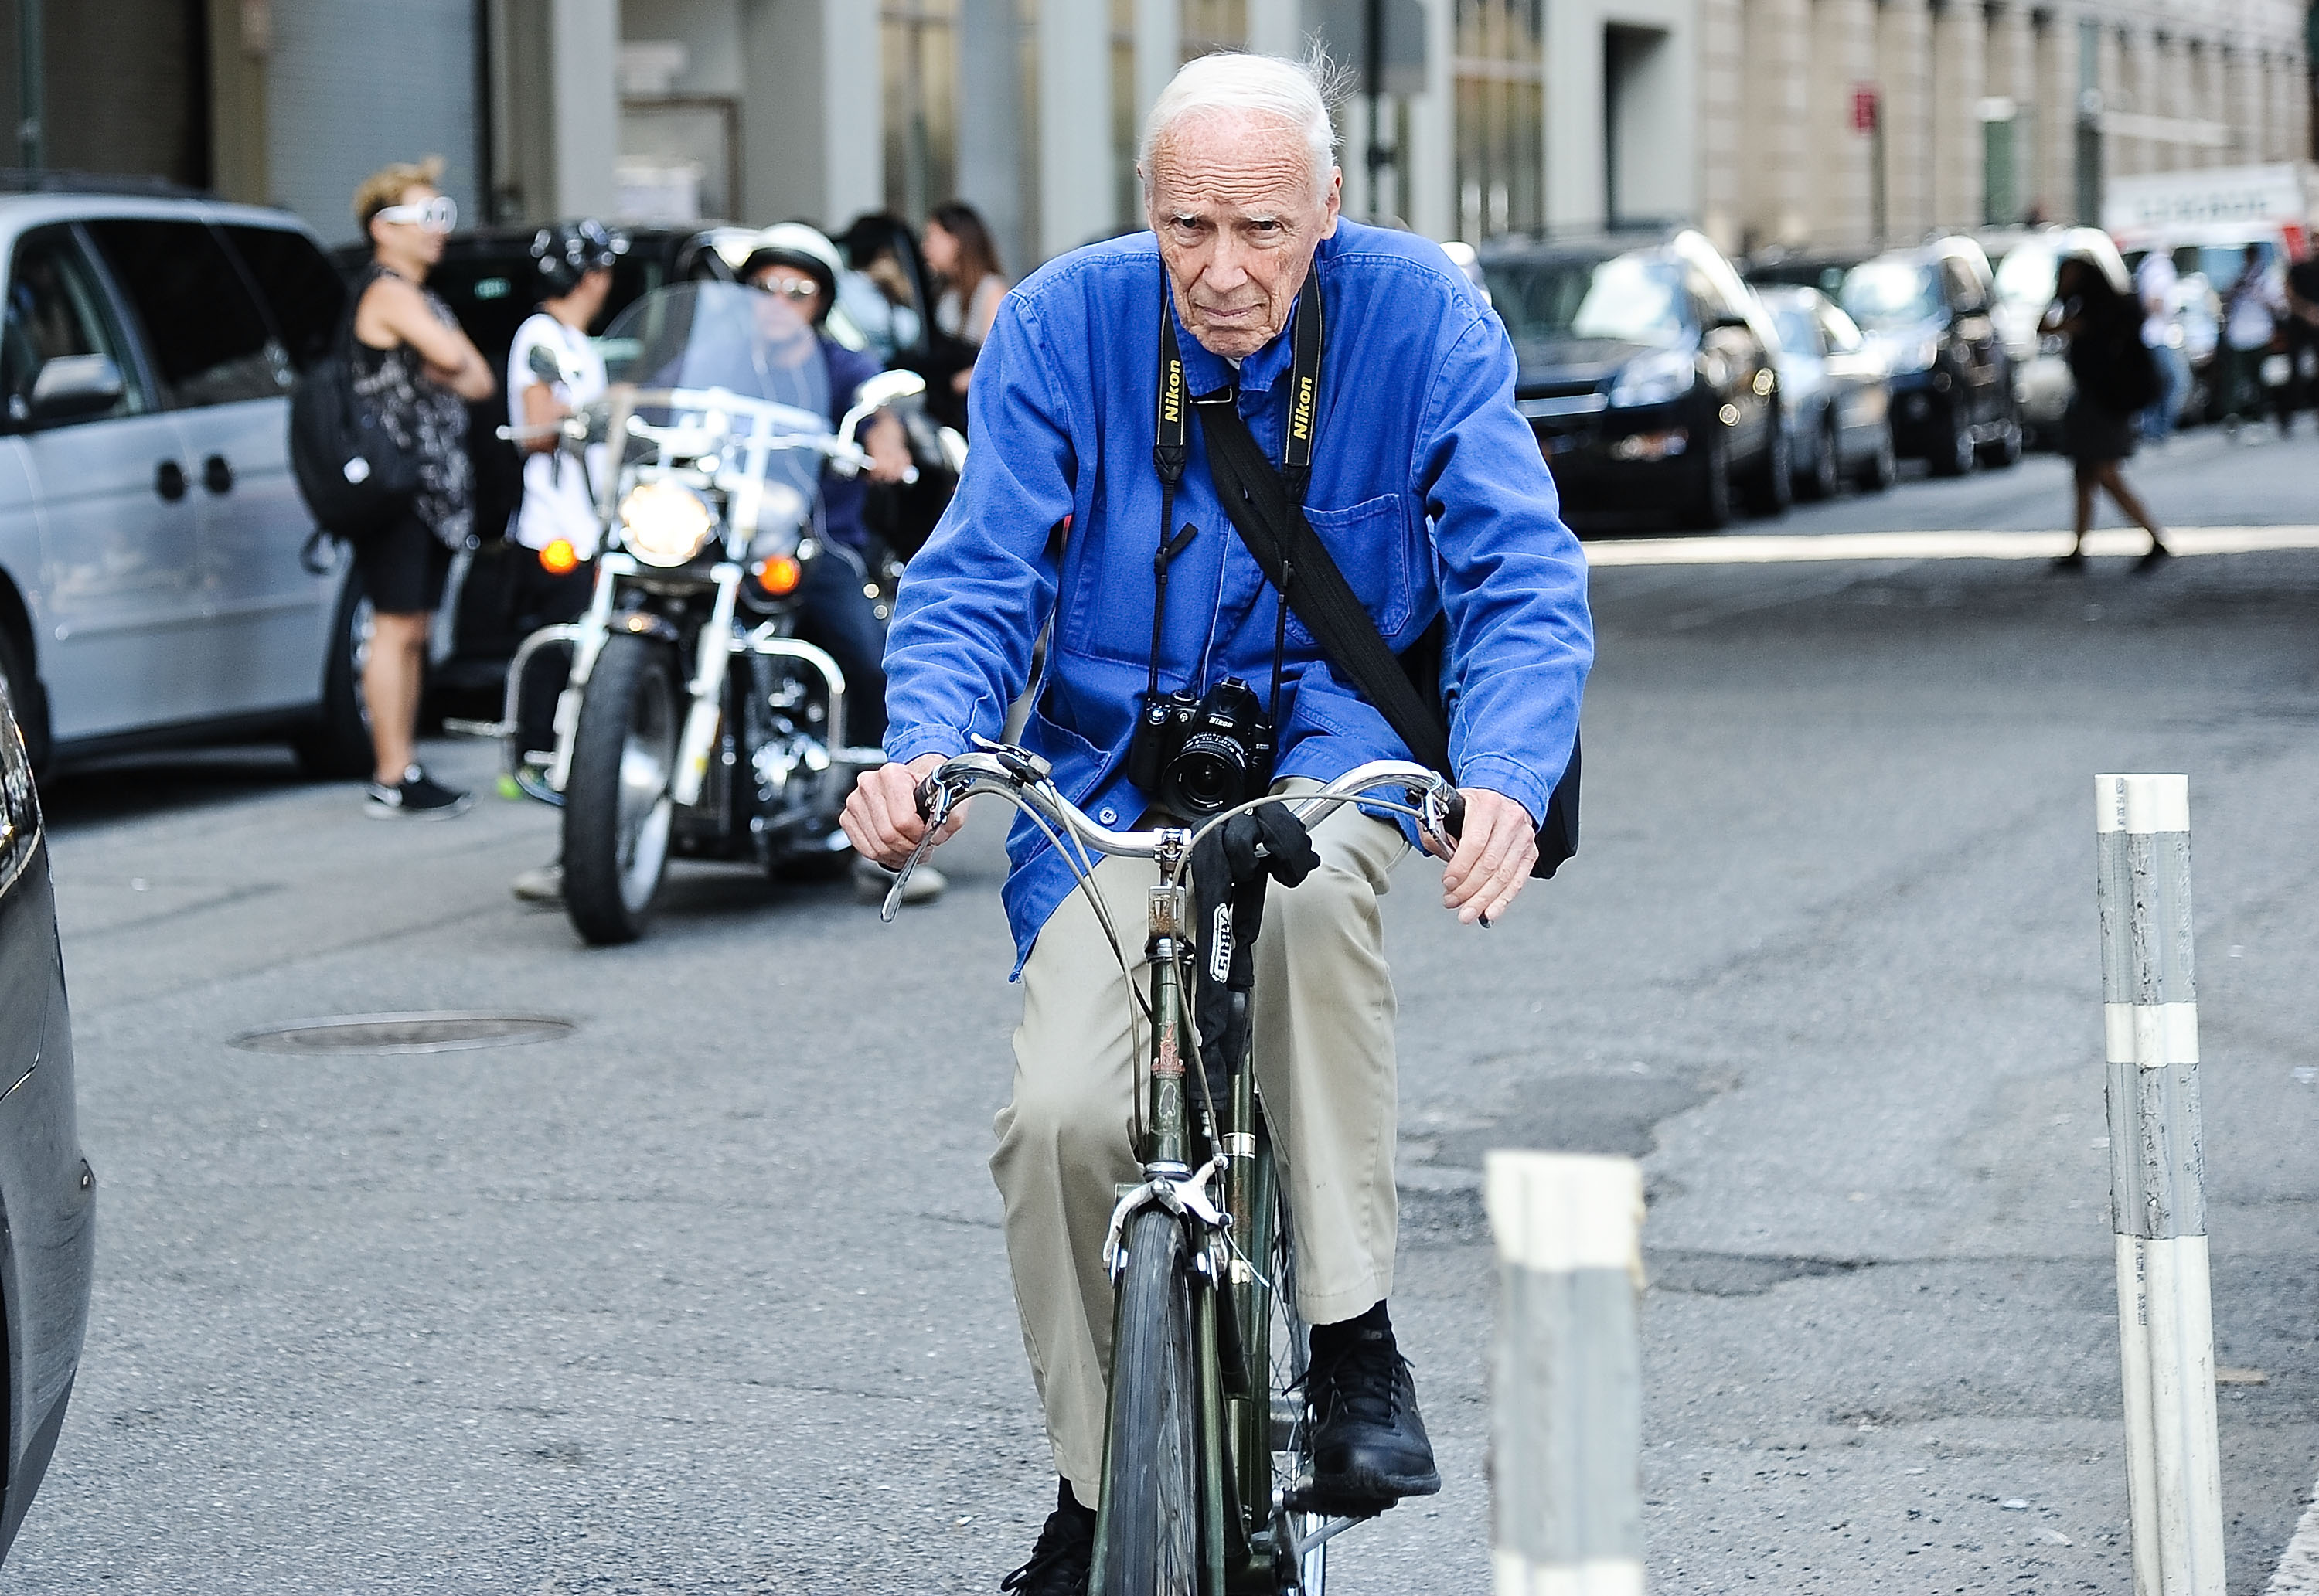 Fashion photographer Bill Cunningham on his bicycle